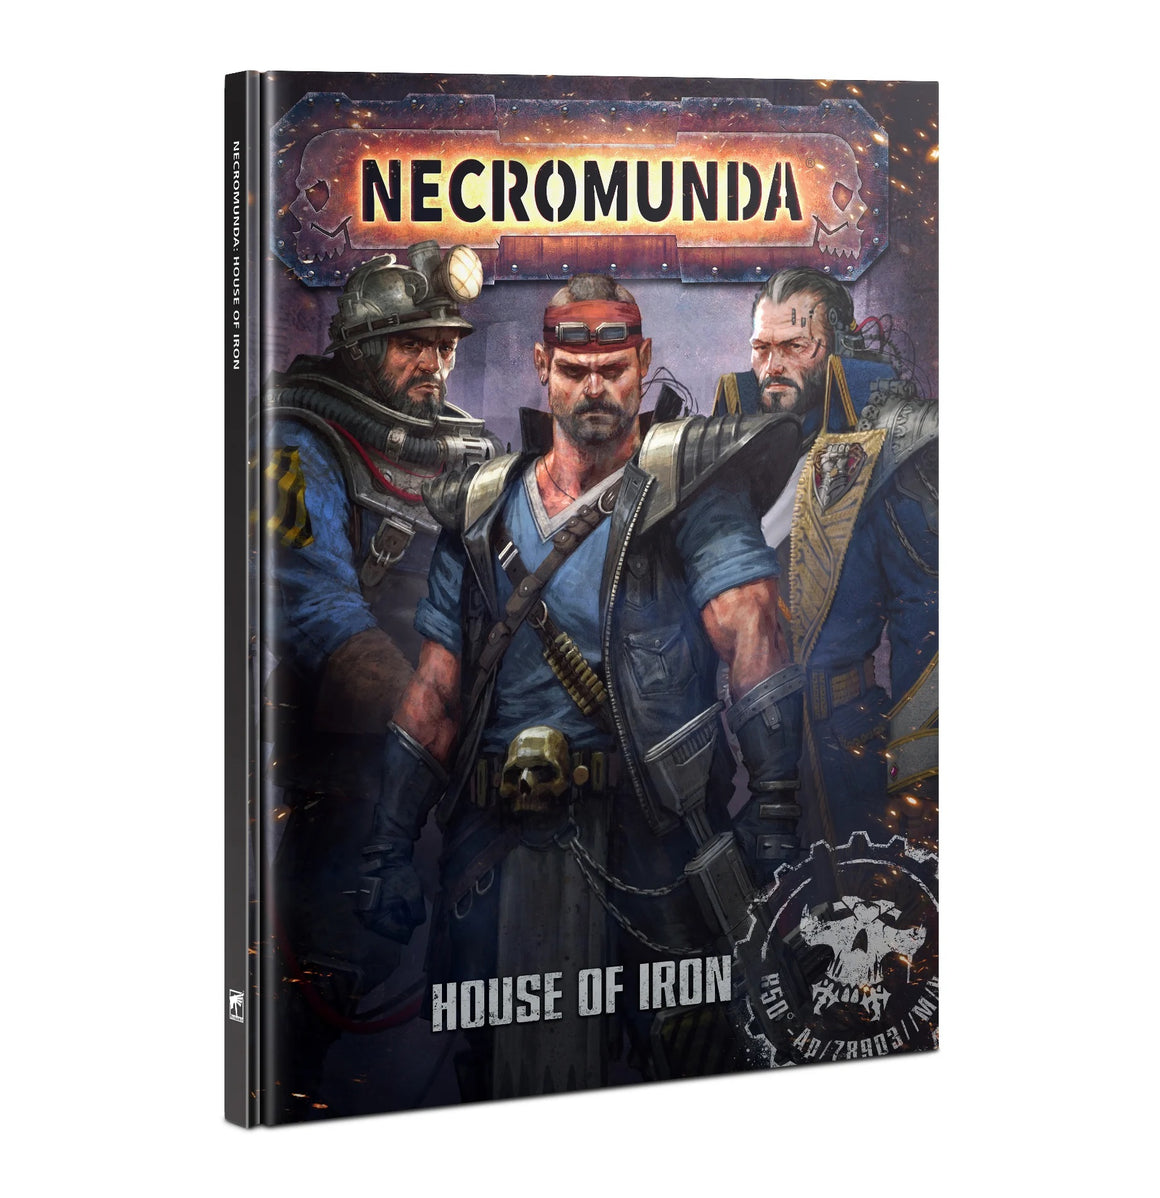 Necromunda House of Iron